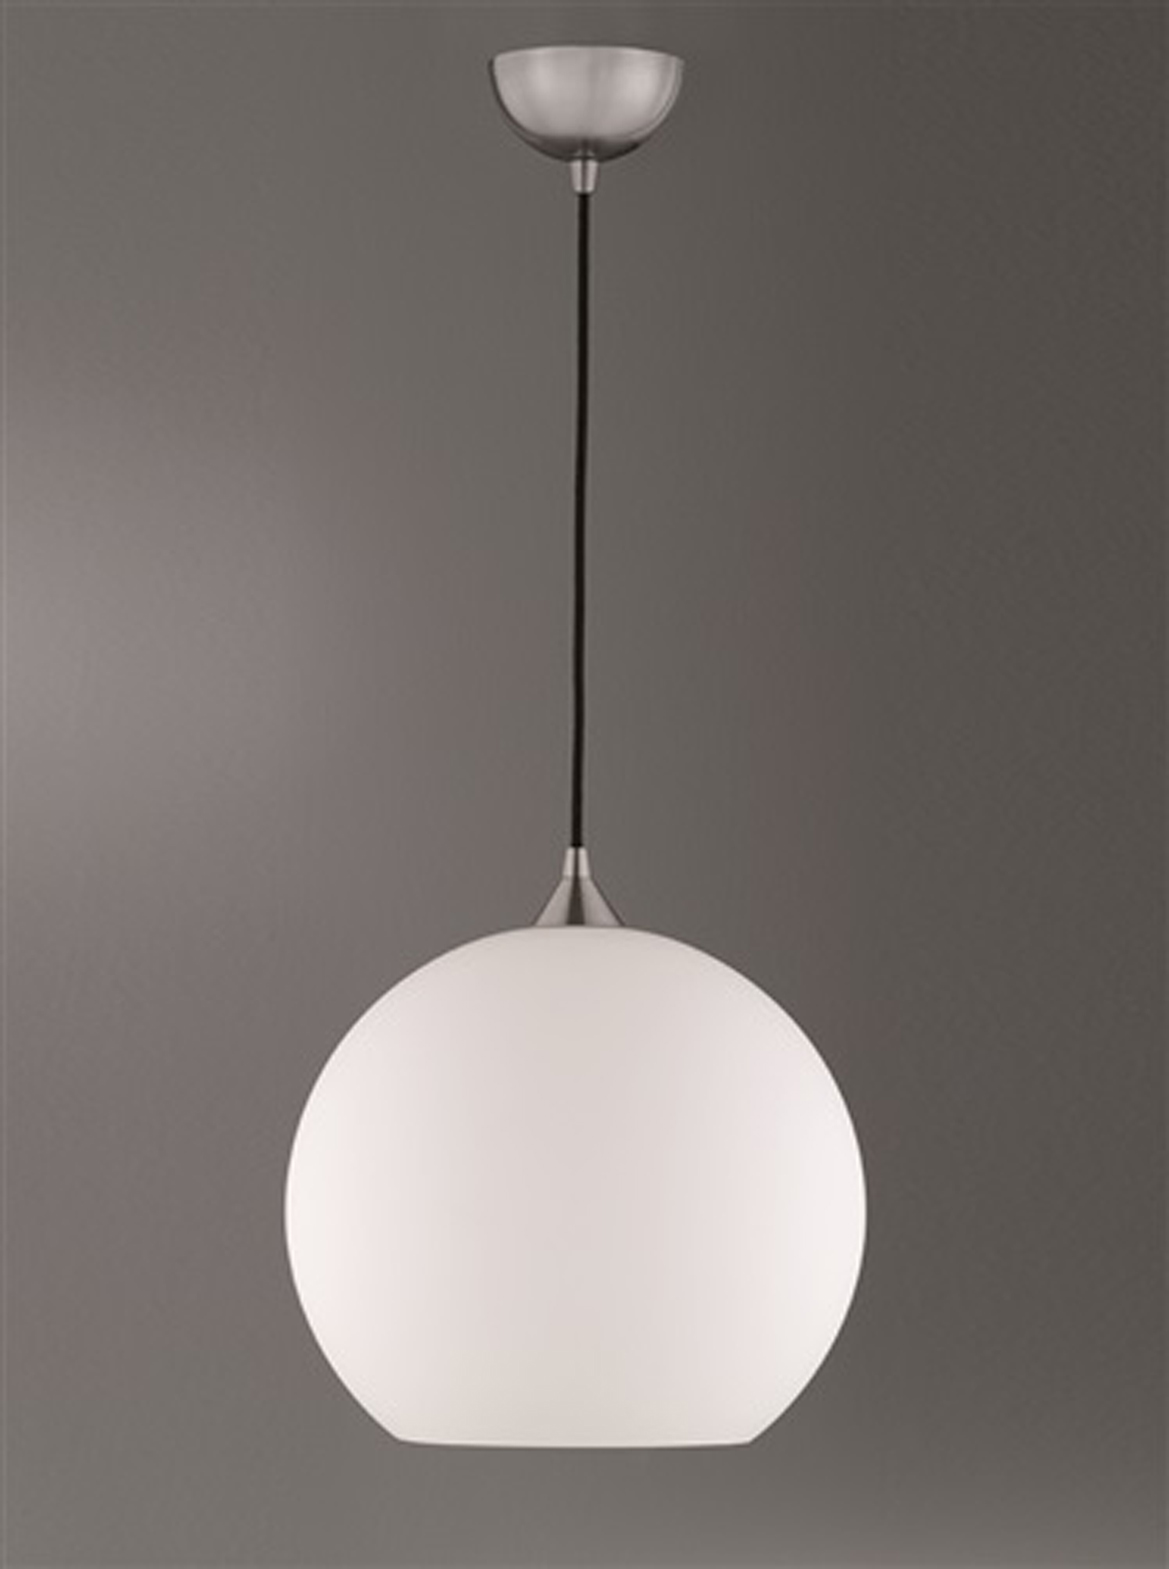 Franklite Vetross Ice 1 Light Ceiling Pendant Satin Nickel - FL2290/1/988